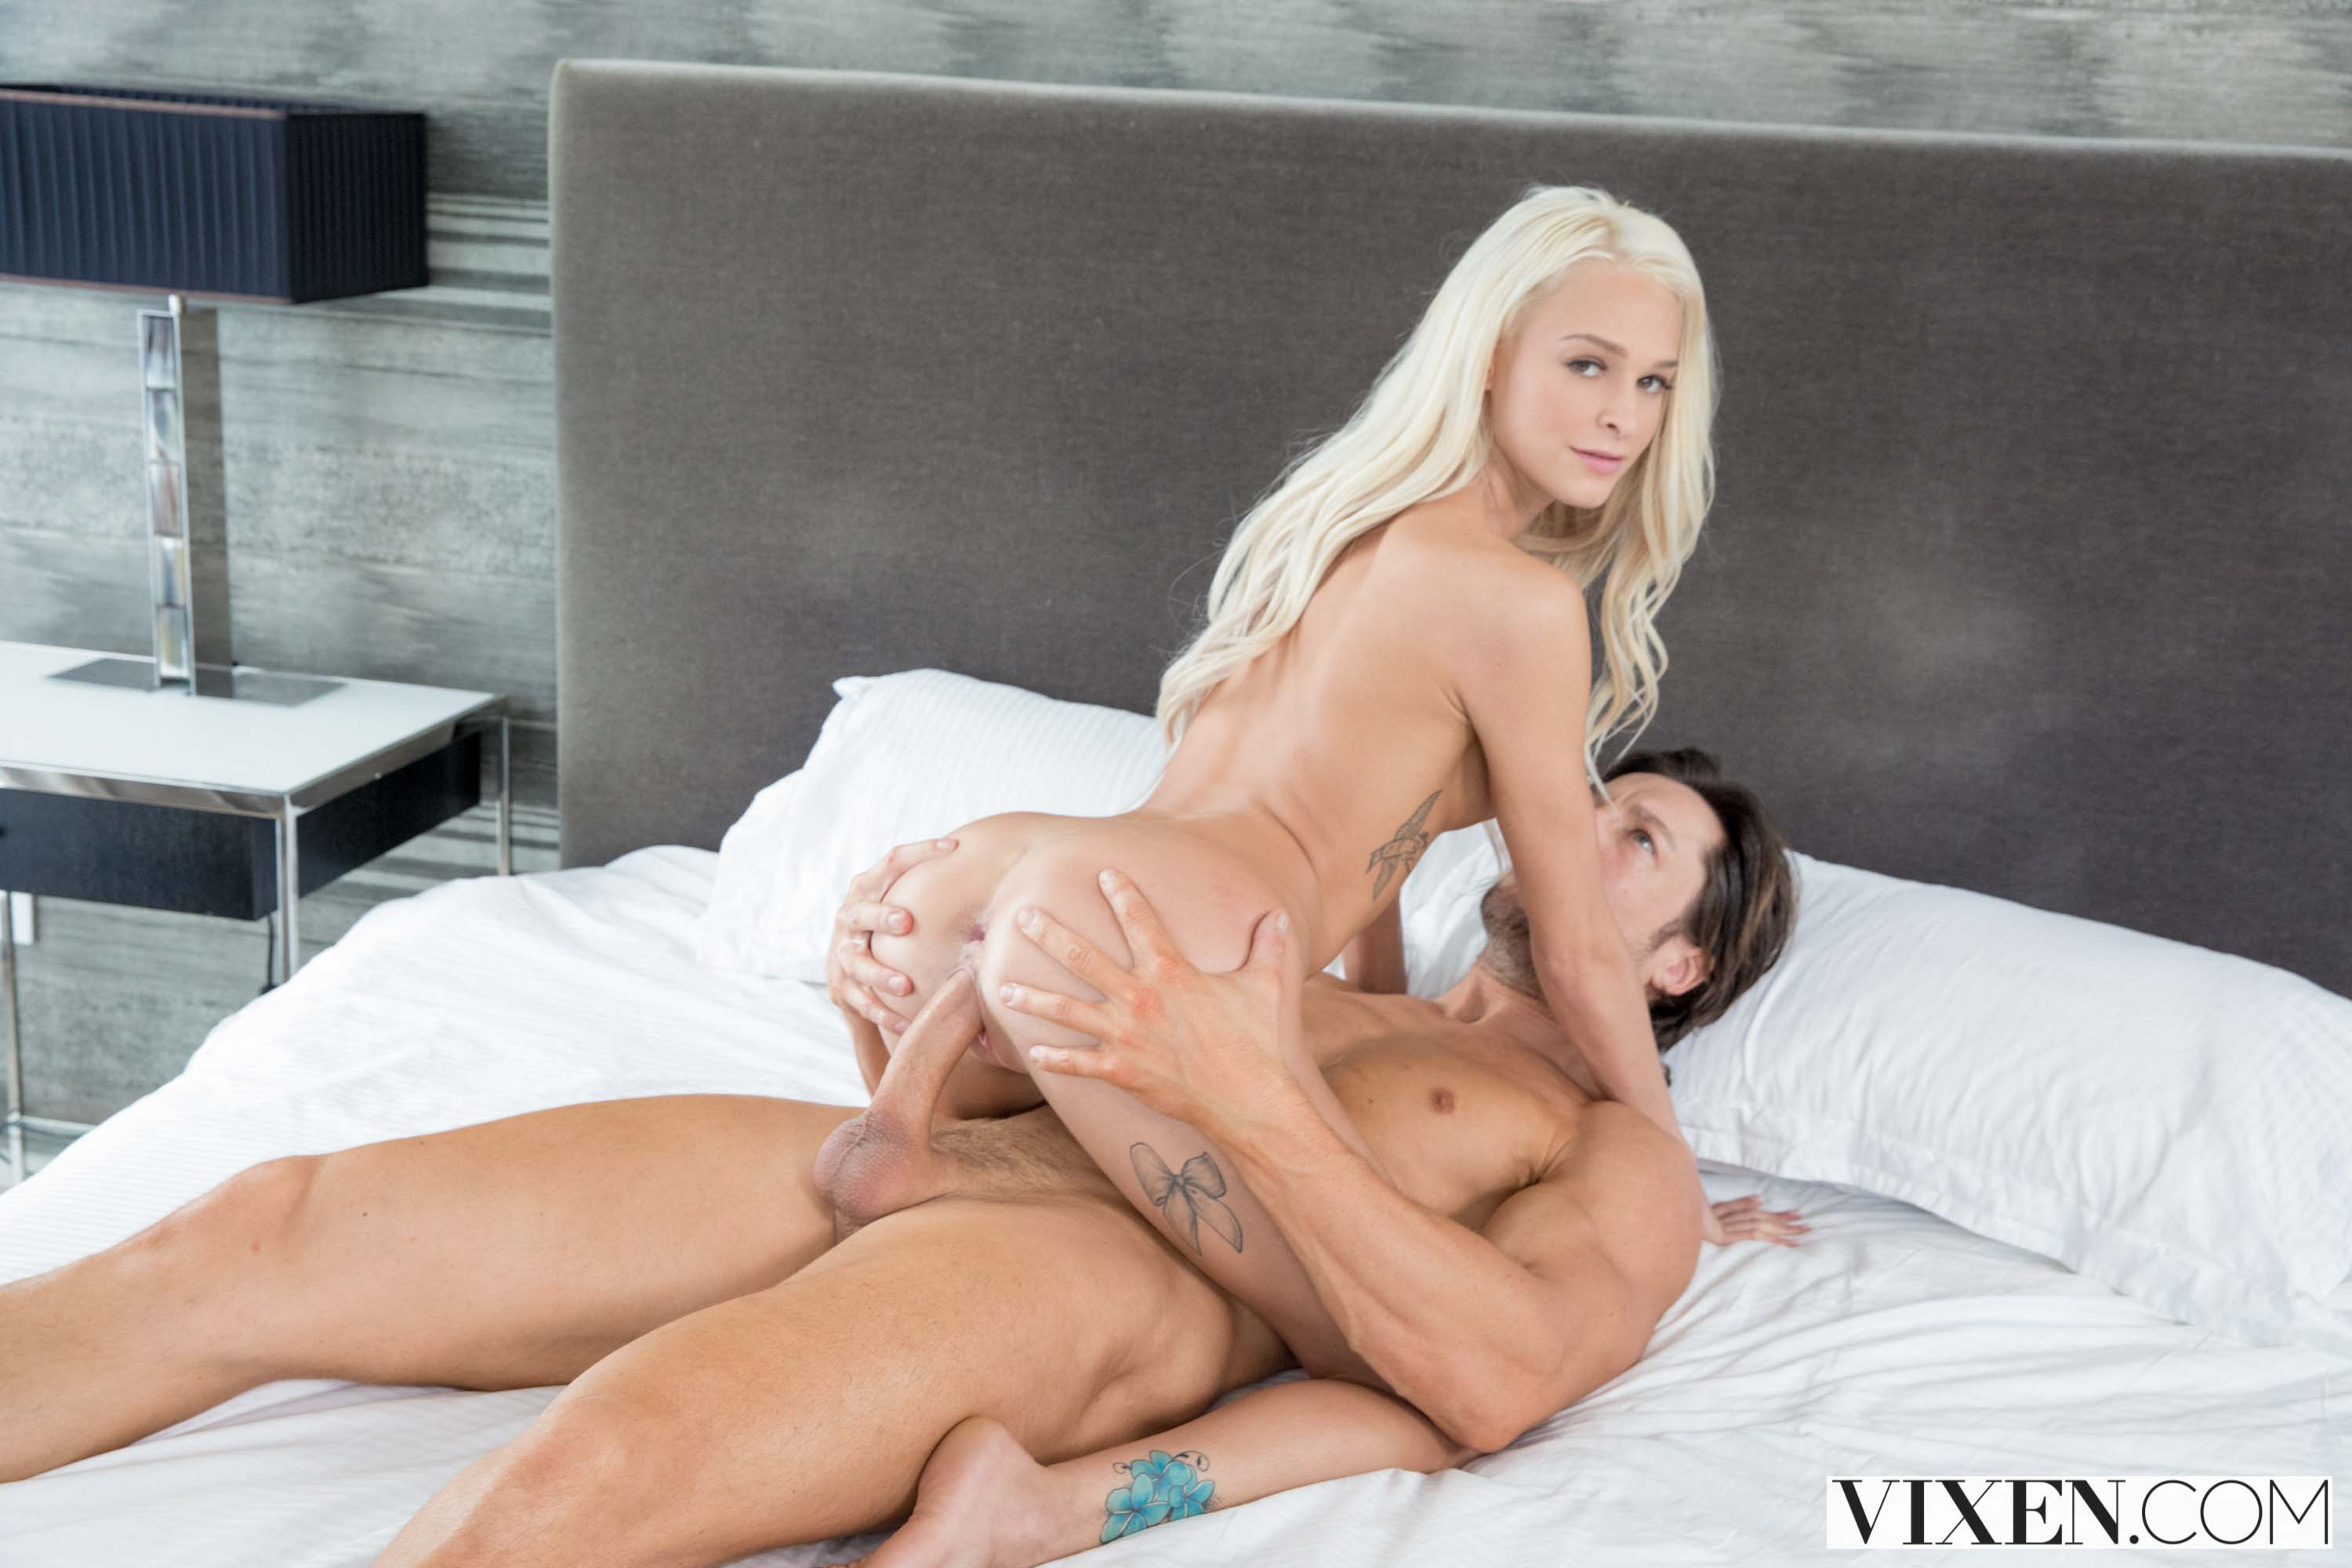 Vixen 'So Much More' starring Emma Hix (photo 13)